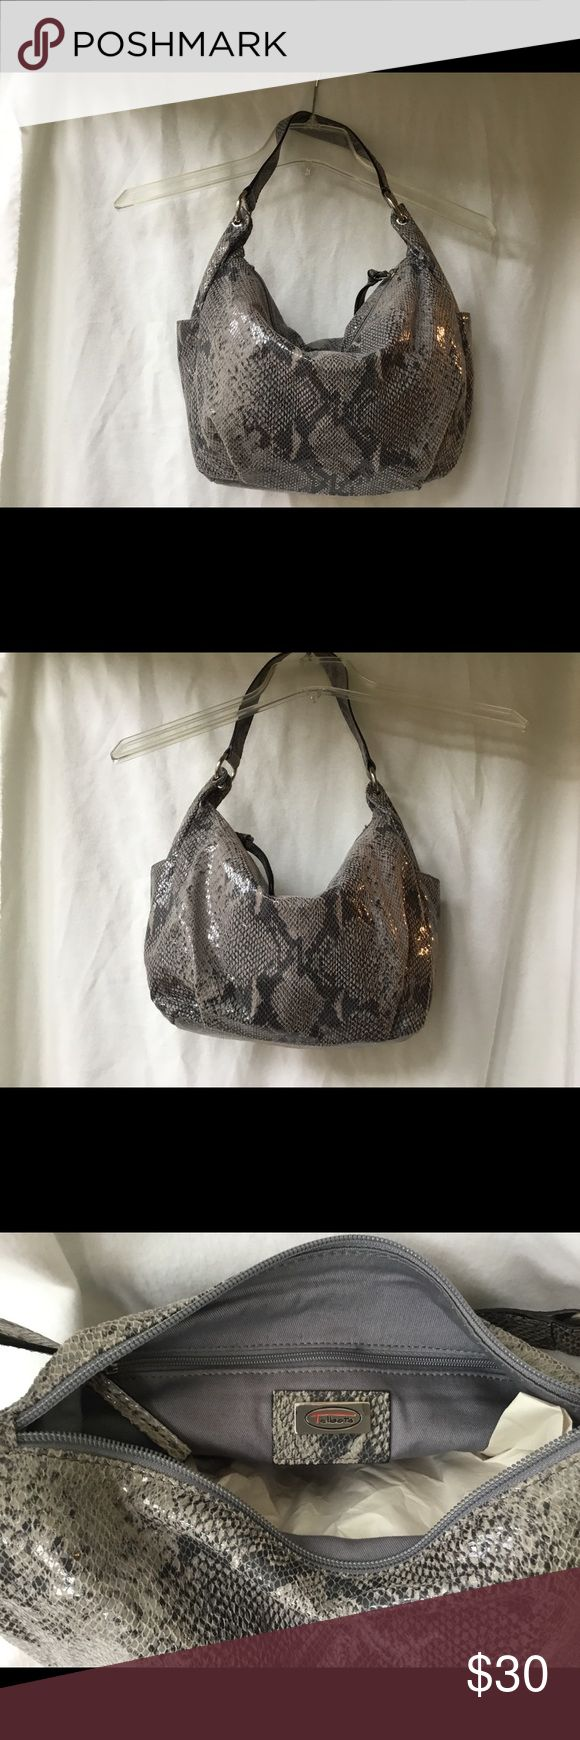 Talbots Bag Talbots faux snakeskin handbag with shoulder strap. Fabric has a slight shimmer. This medium-sized bag coordinates with all your neutrals. Looks good winter and summer. One large compartment inside and both ends have pouch for small items. Talbots Bags Hobos